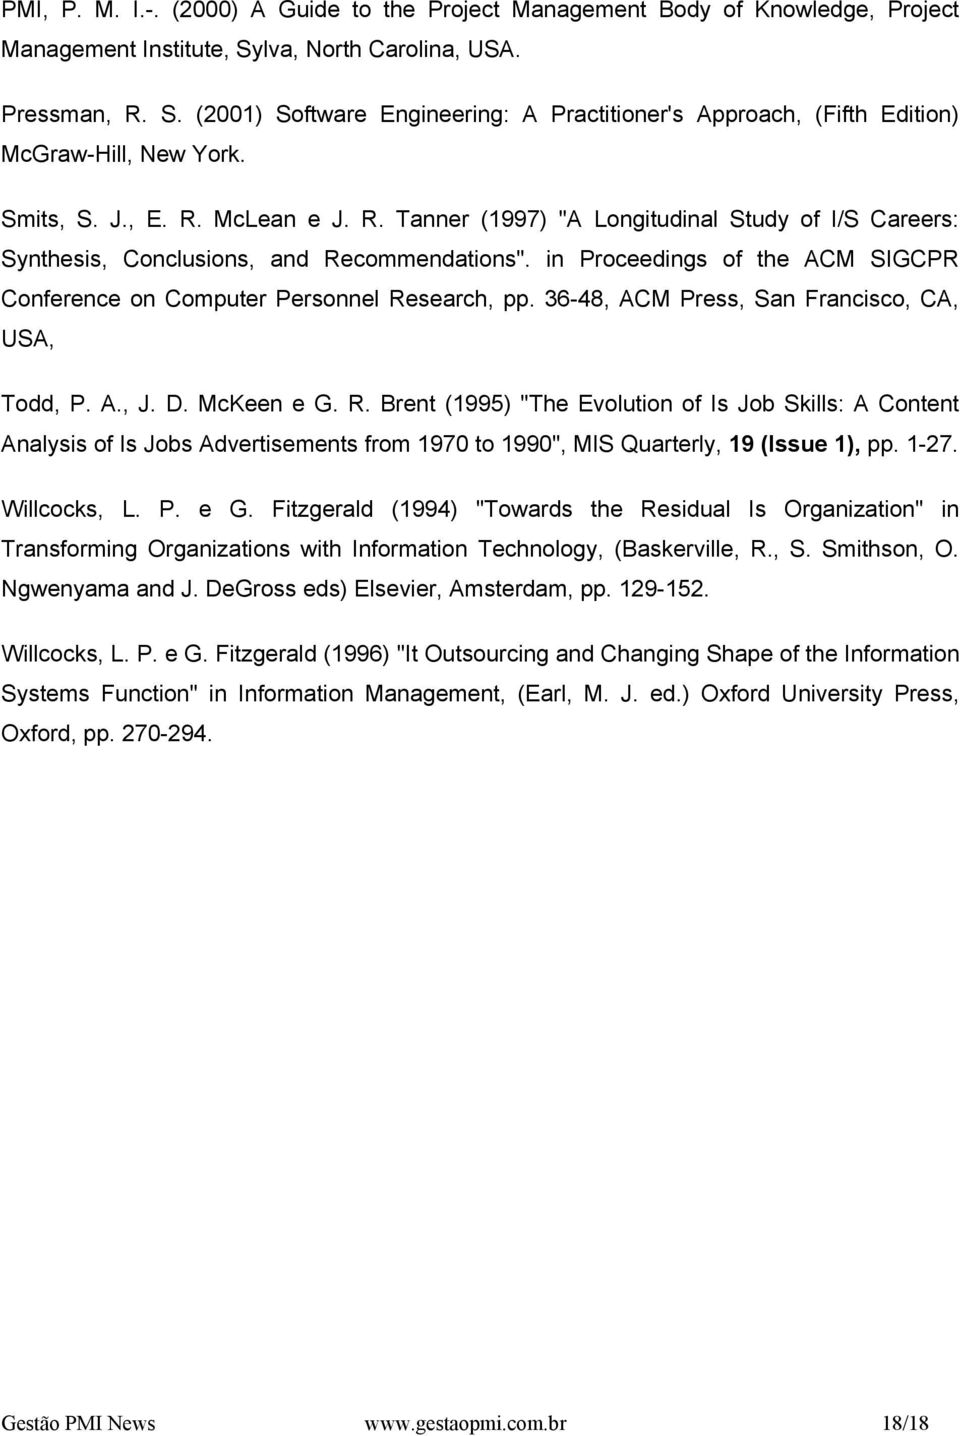 in Proceedings of the ACM SIGCPR Conference on Computer Personnel Re